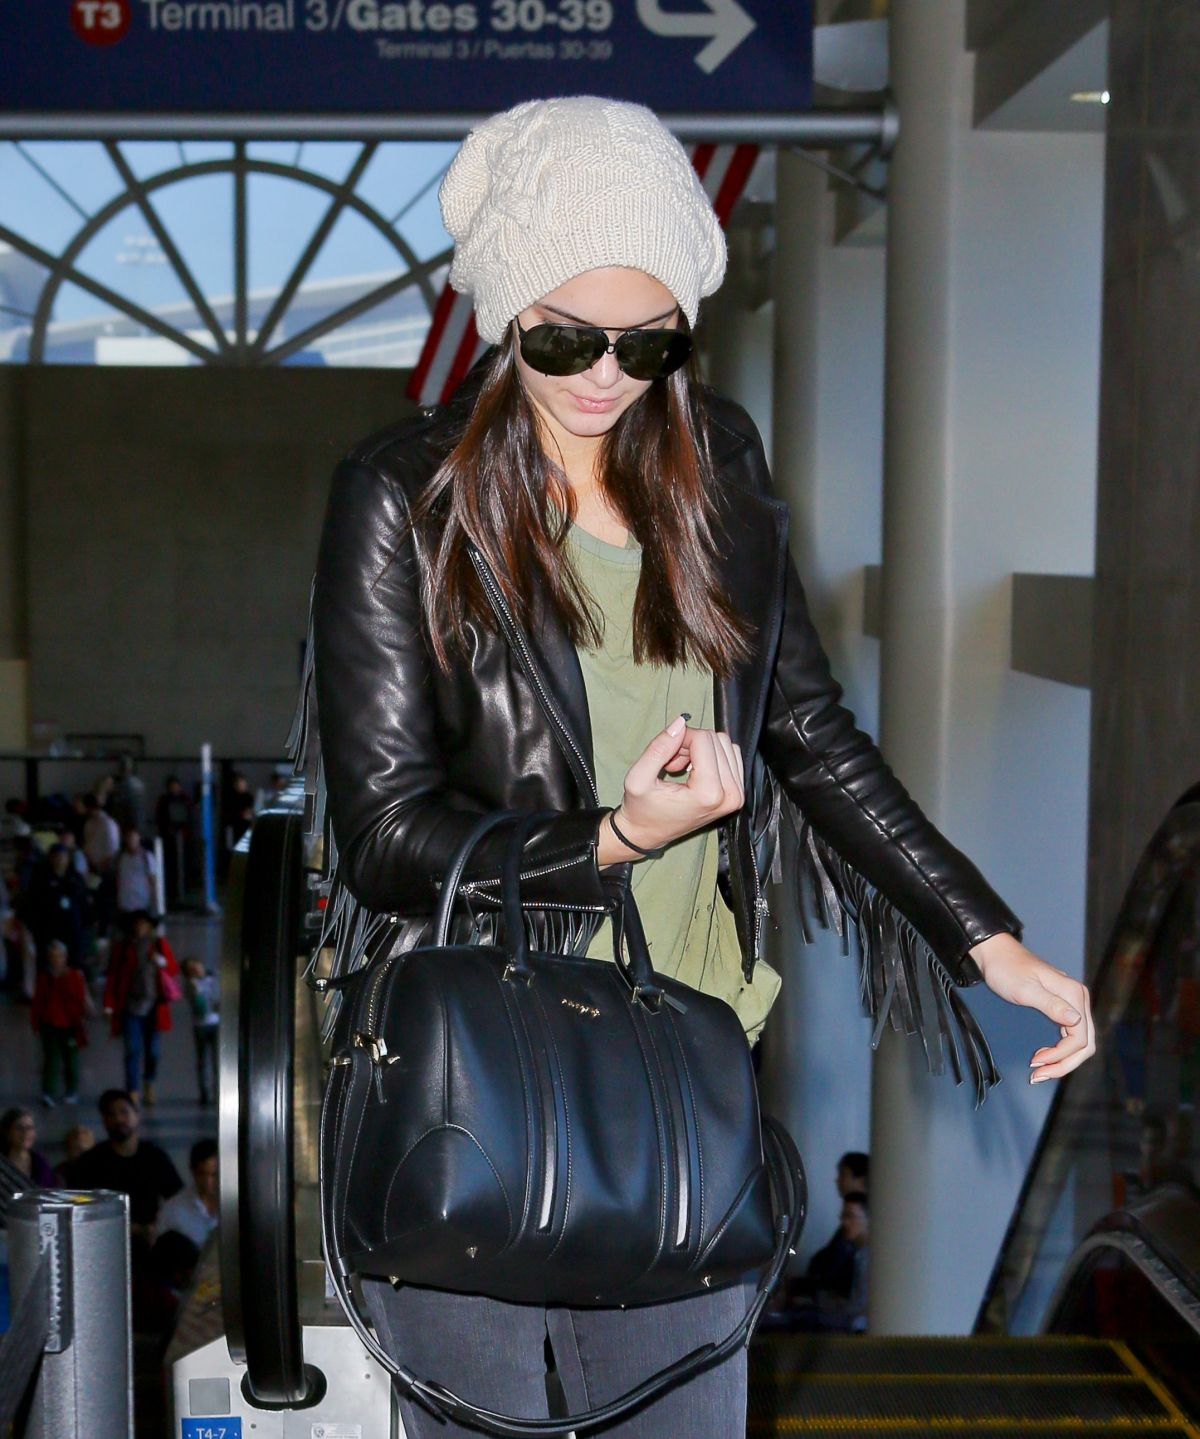 KENDALL JENNER at LAX Airport in Los Ageles 2404